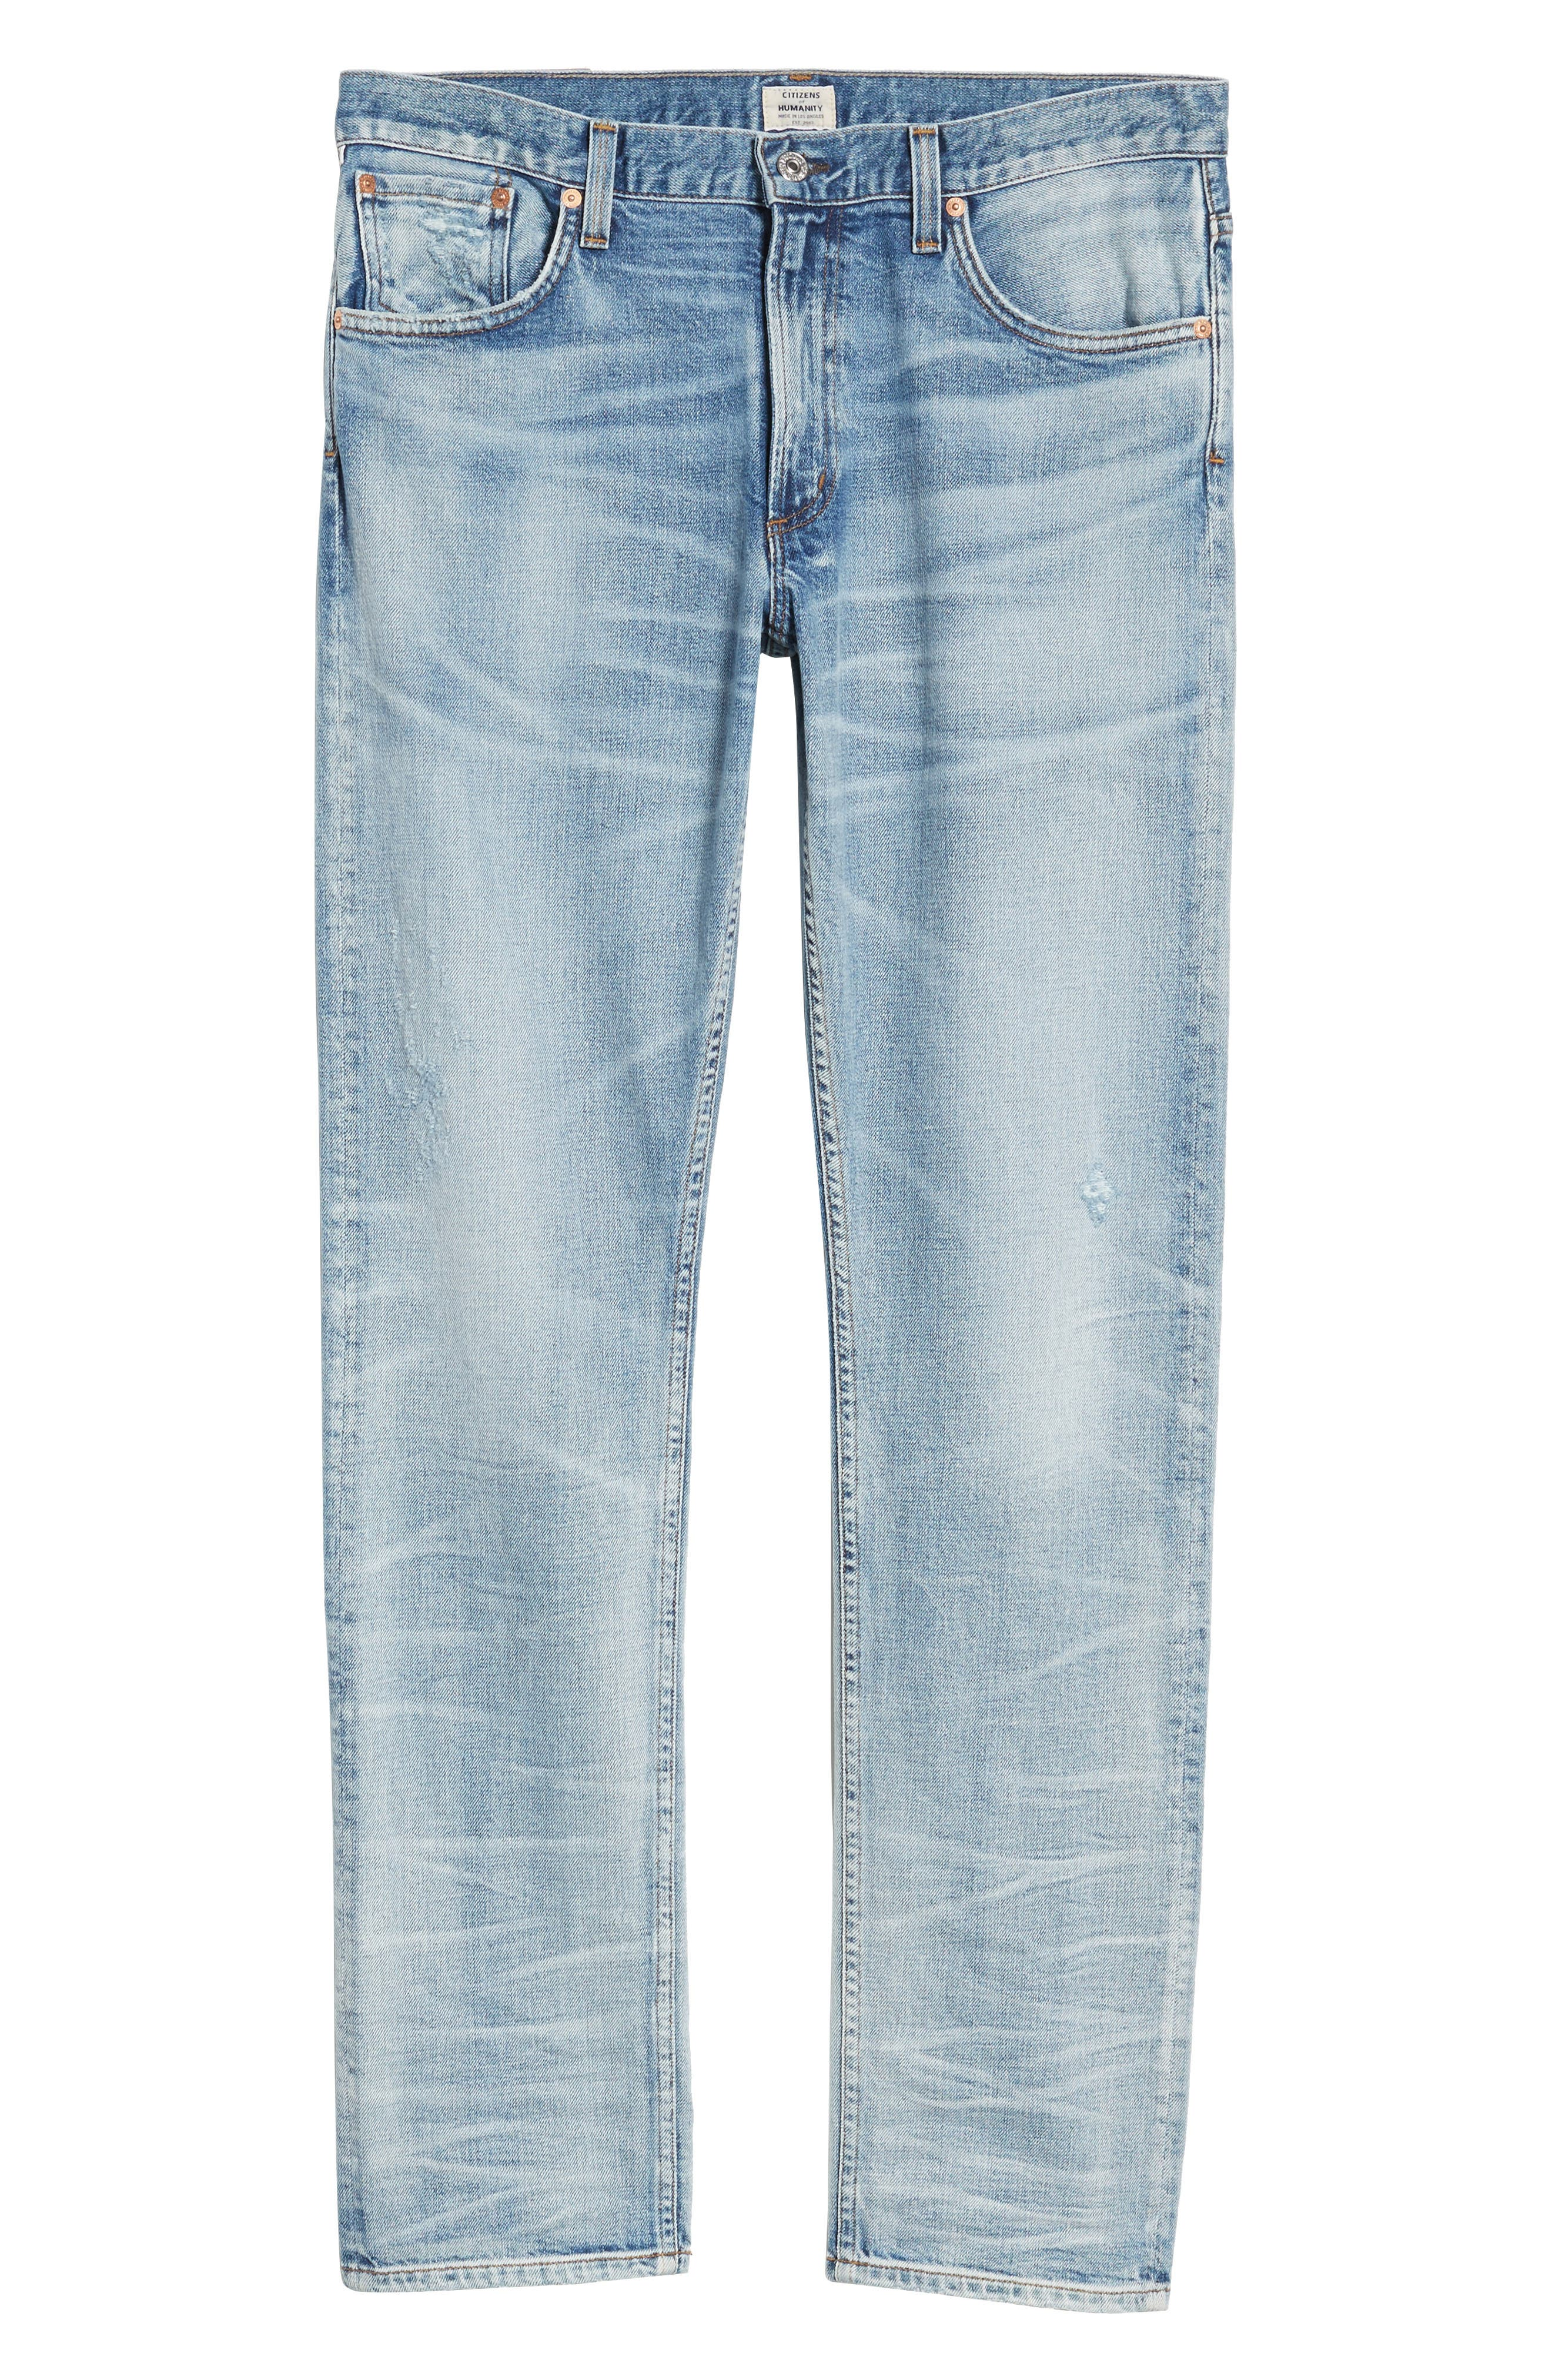 Bowery Slim Fit Jeans,                             Alternate thumbnail 6, color,                             Lone Pine